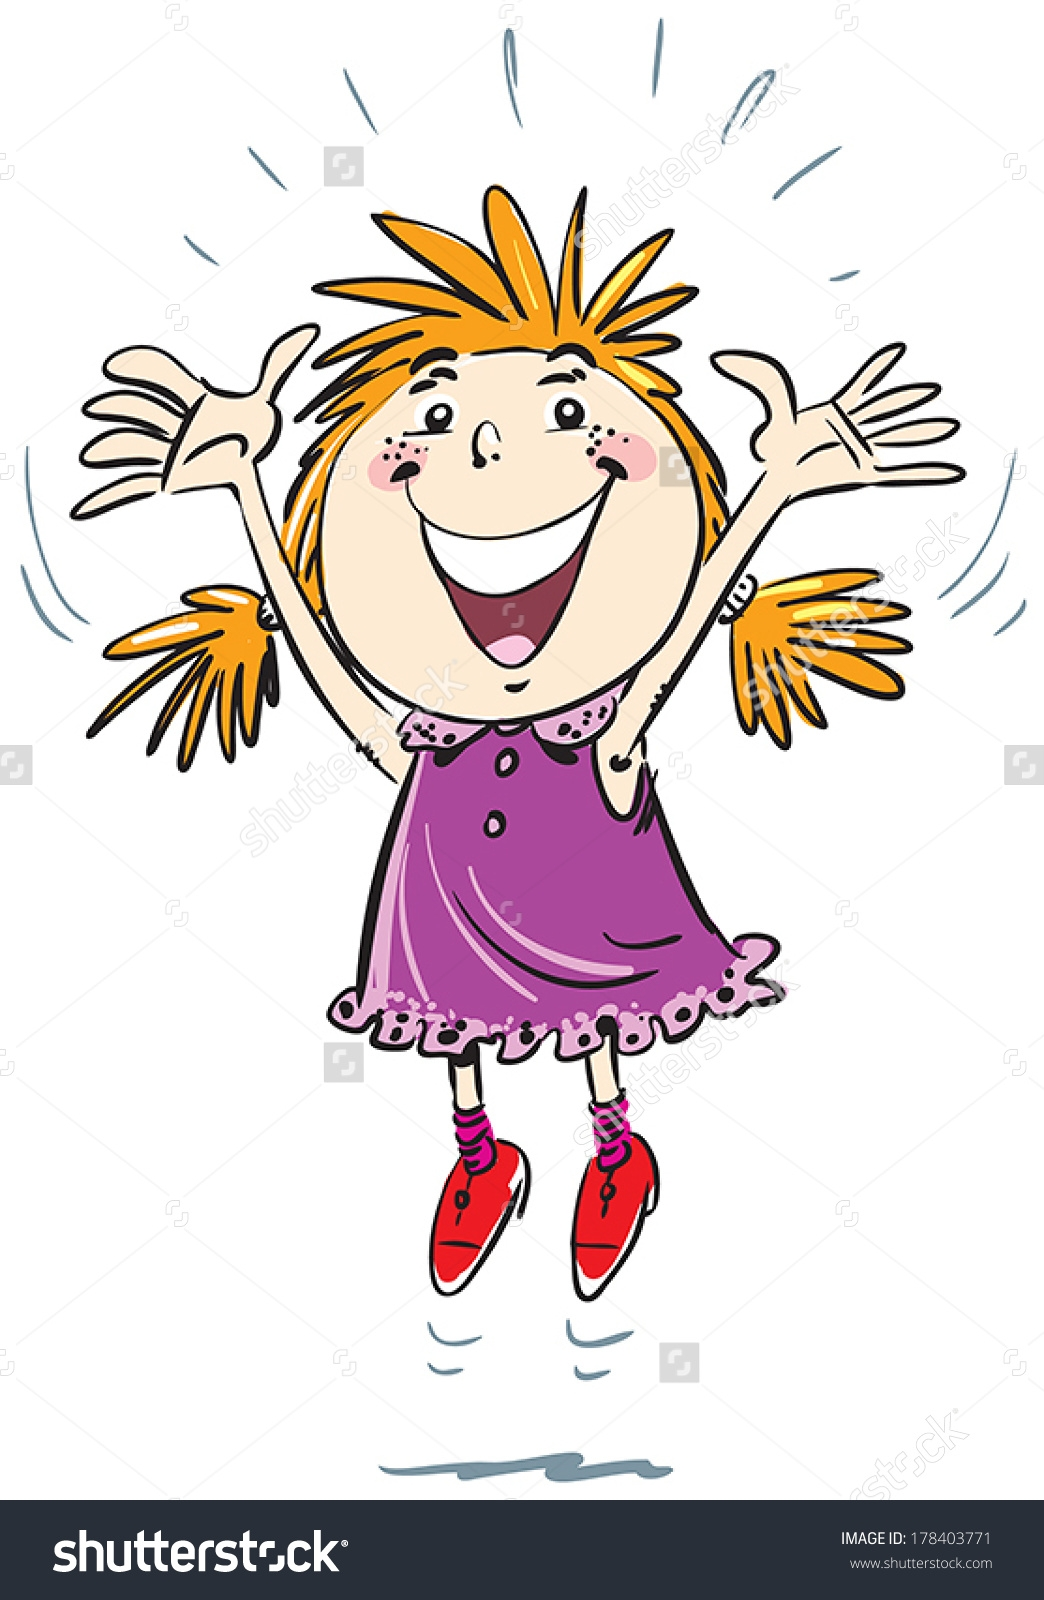 Joy clipart Luxury Girl jumping for joy clipart free Clip.